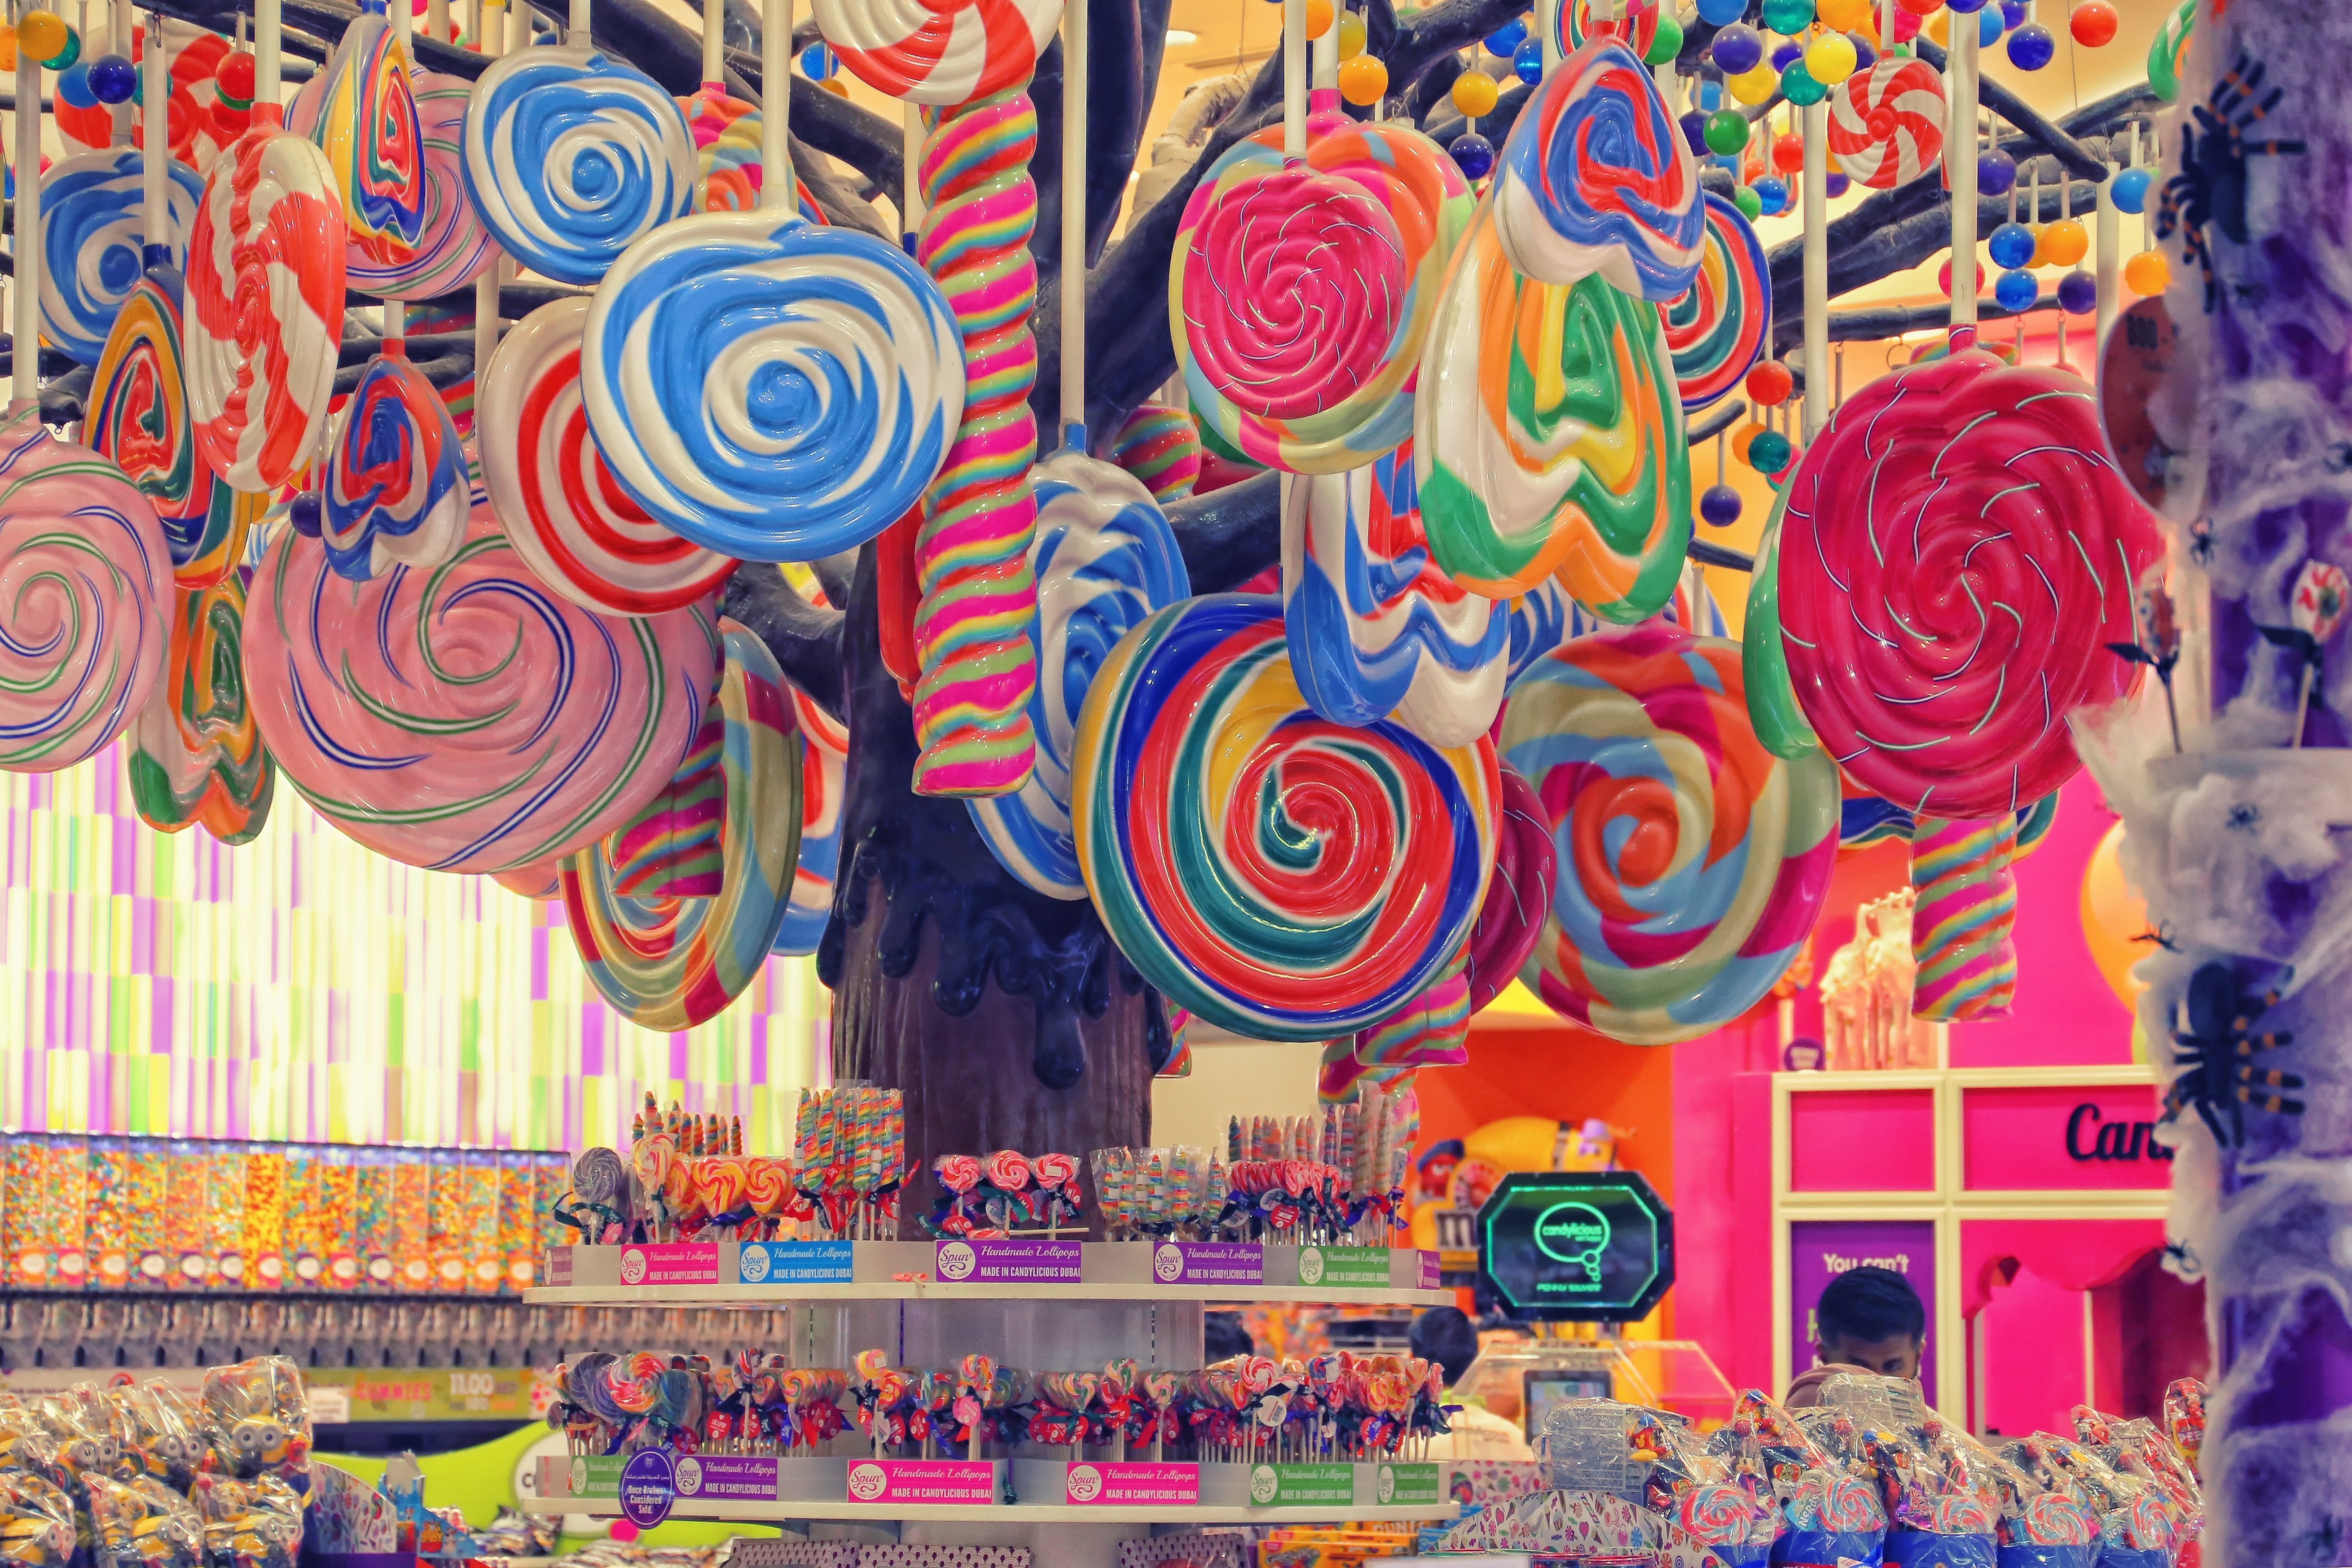 An assortment of sweets in a candy shop. | Source: Unsplash